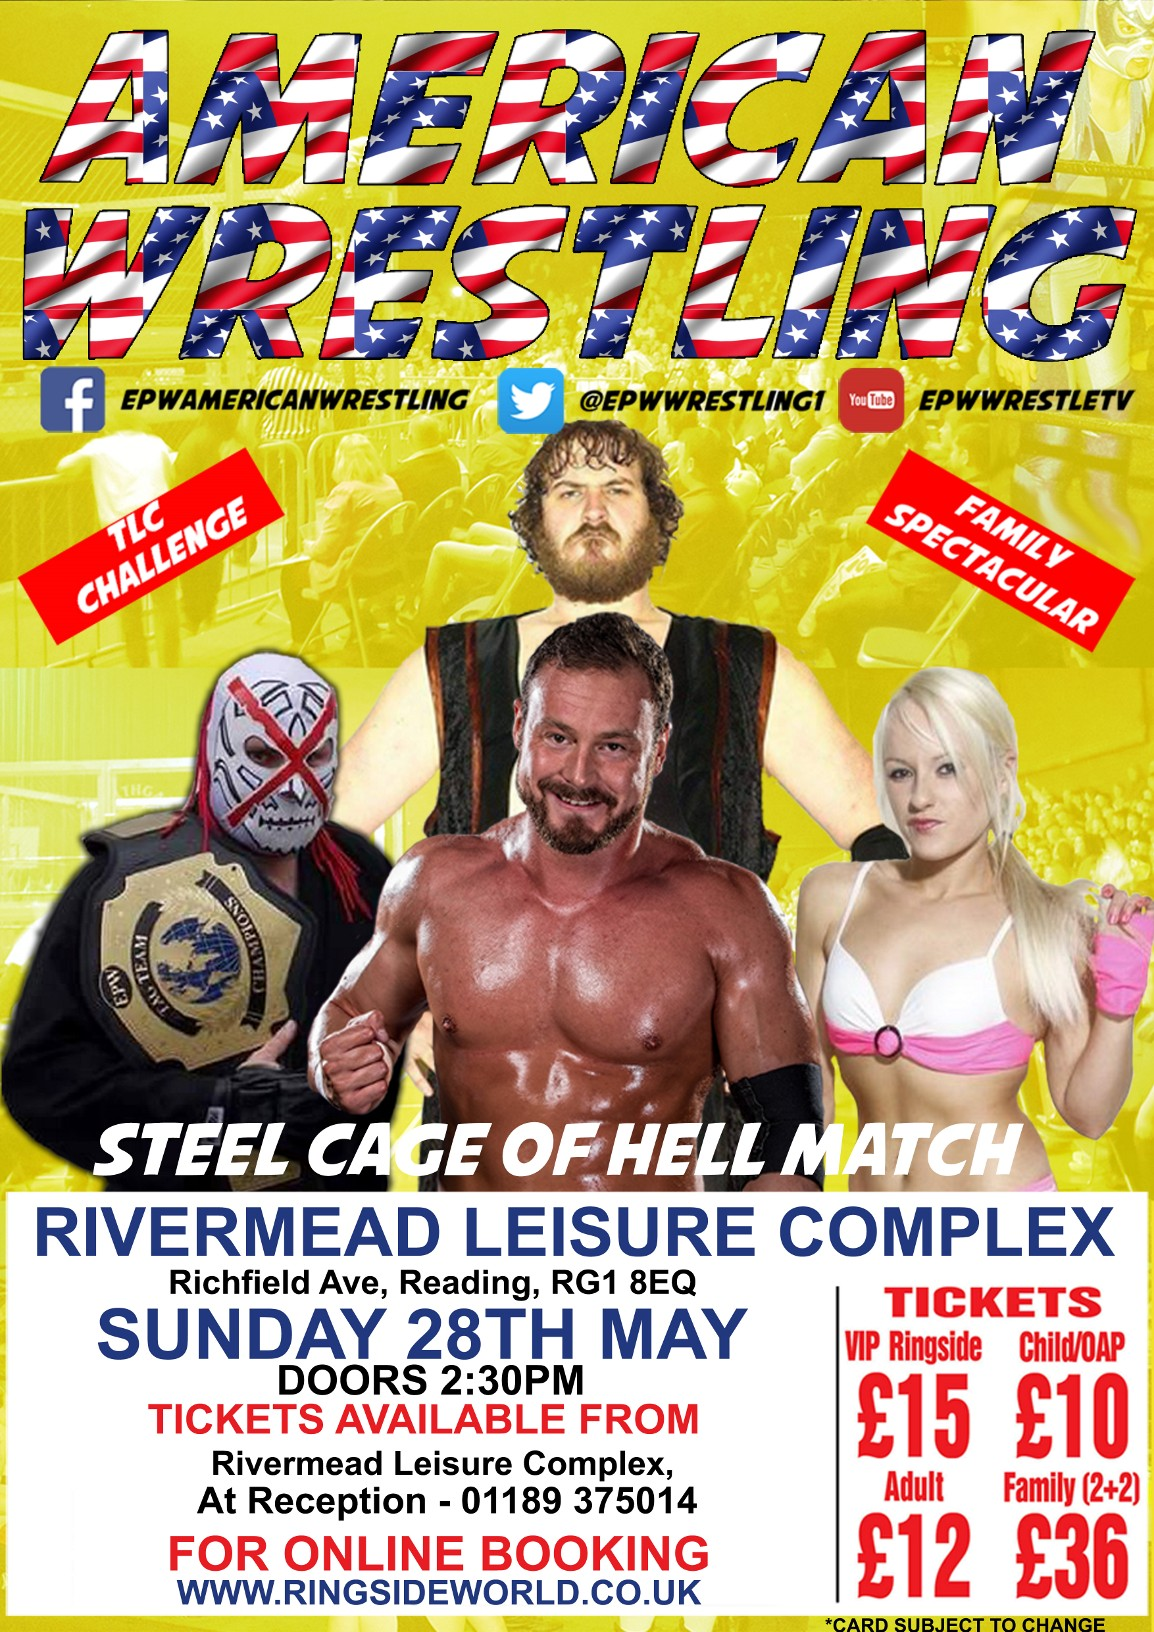 WIN: Family tickets to wrestling event